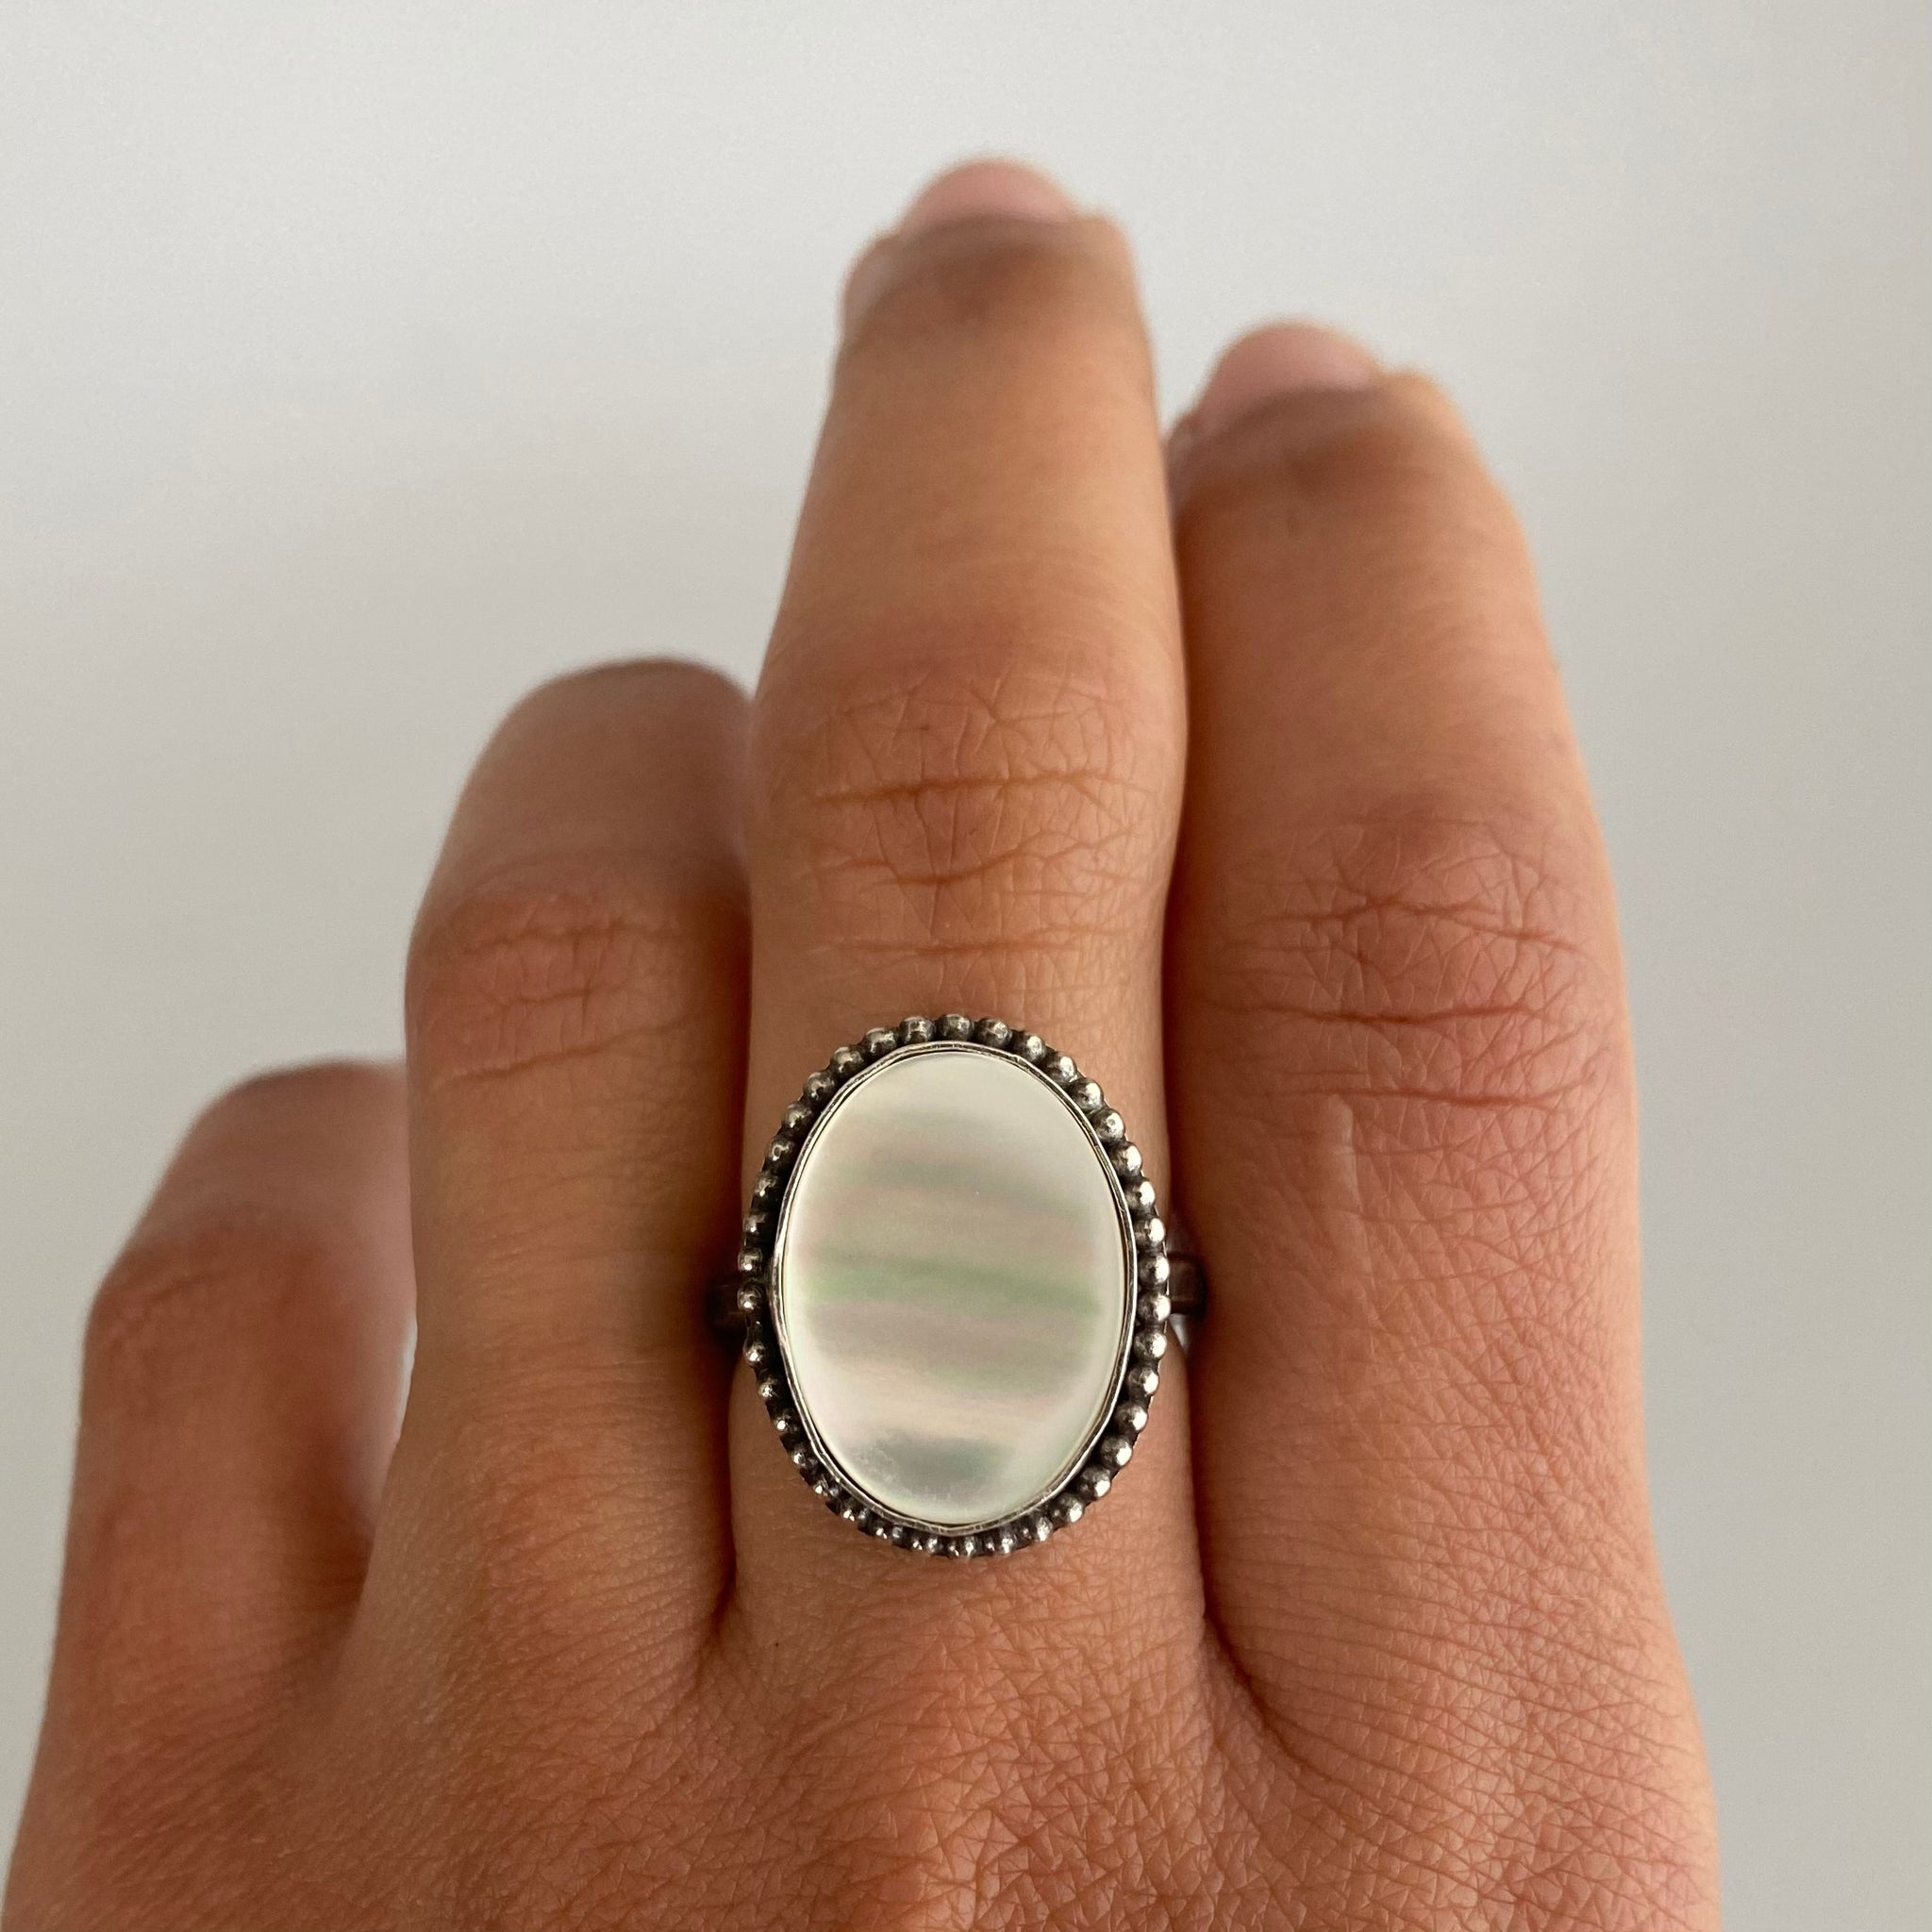 Mother of Pearl Ring with Beaded Detail #2